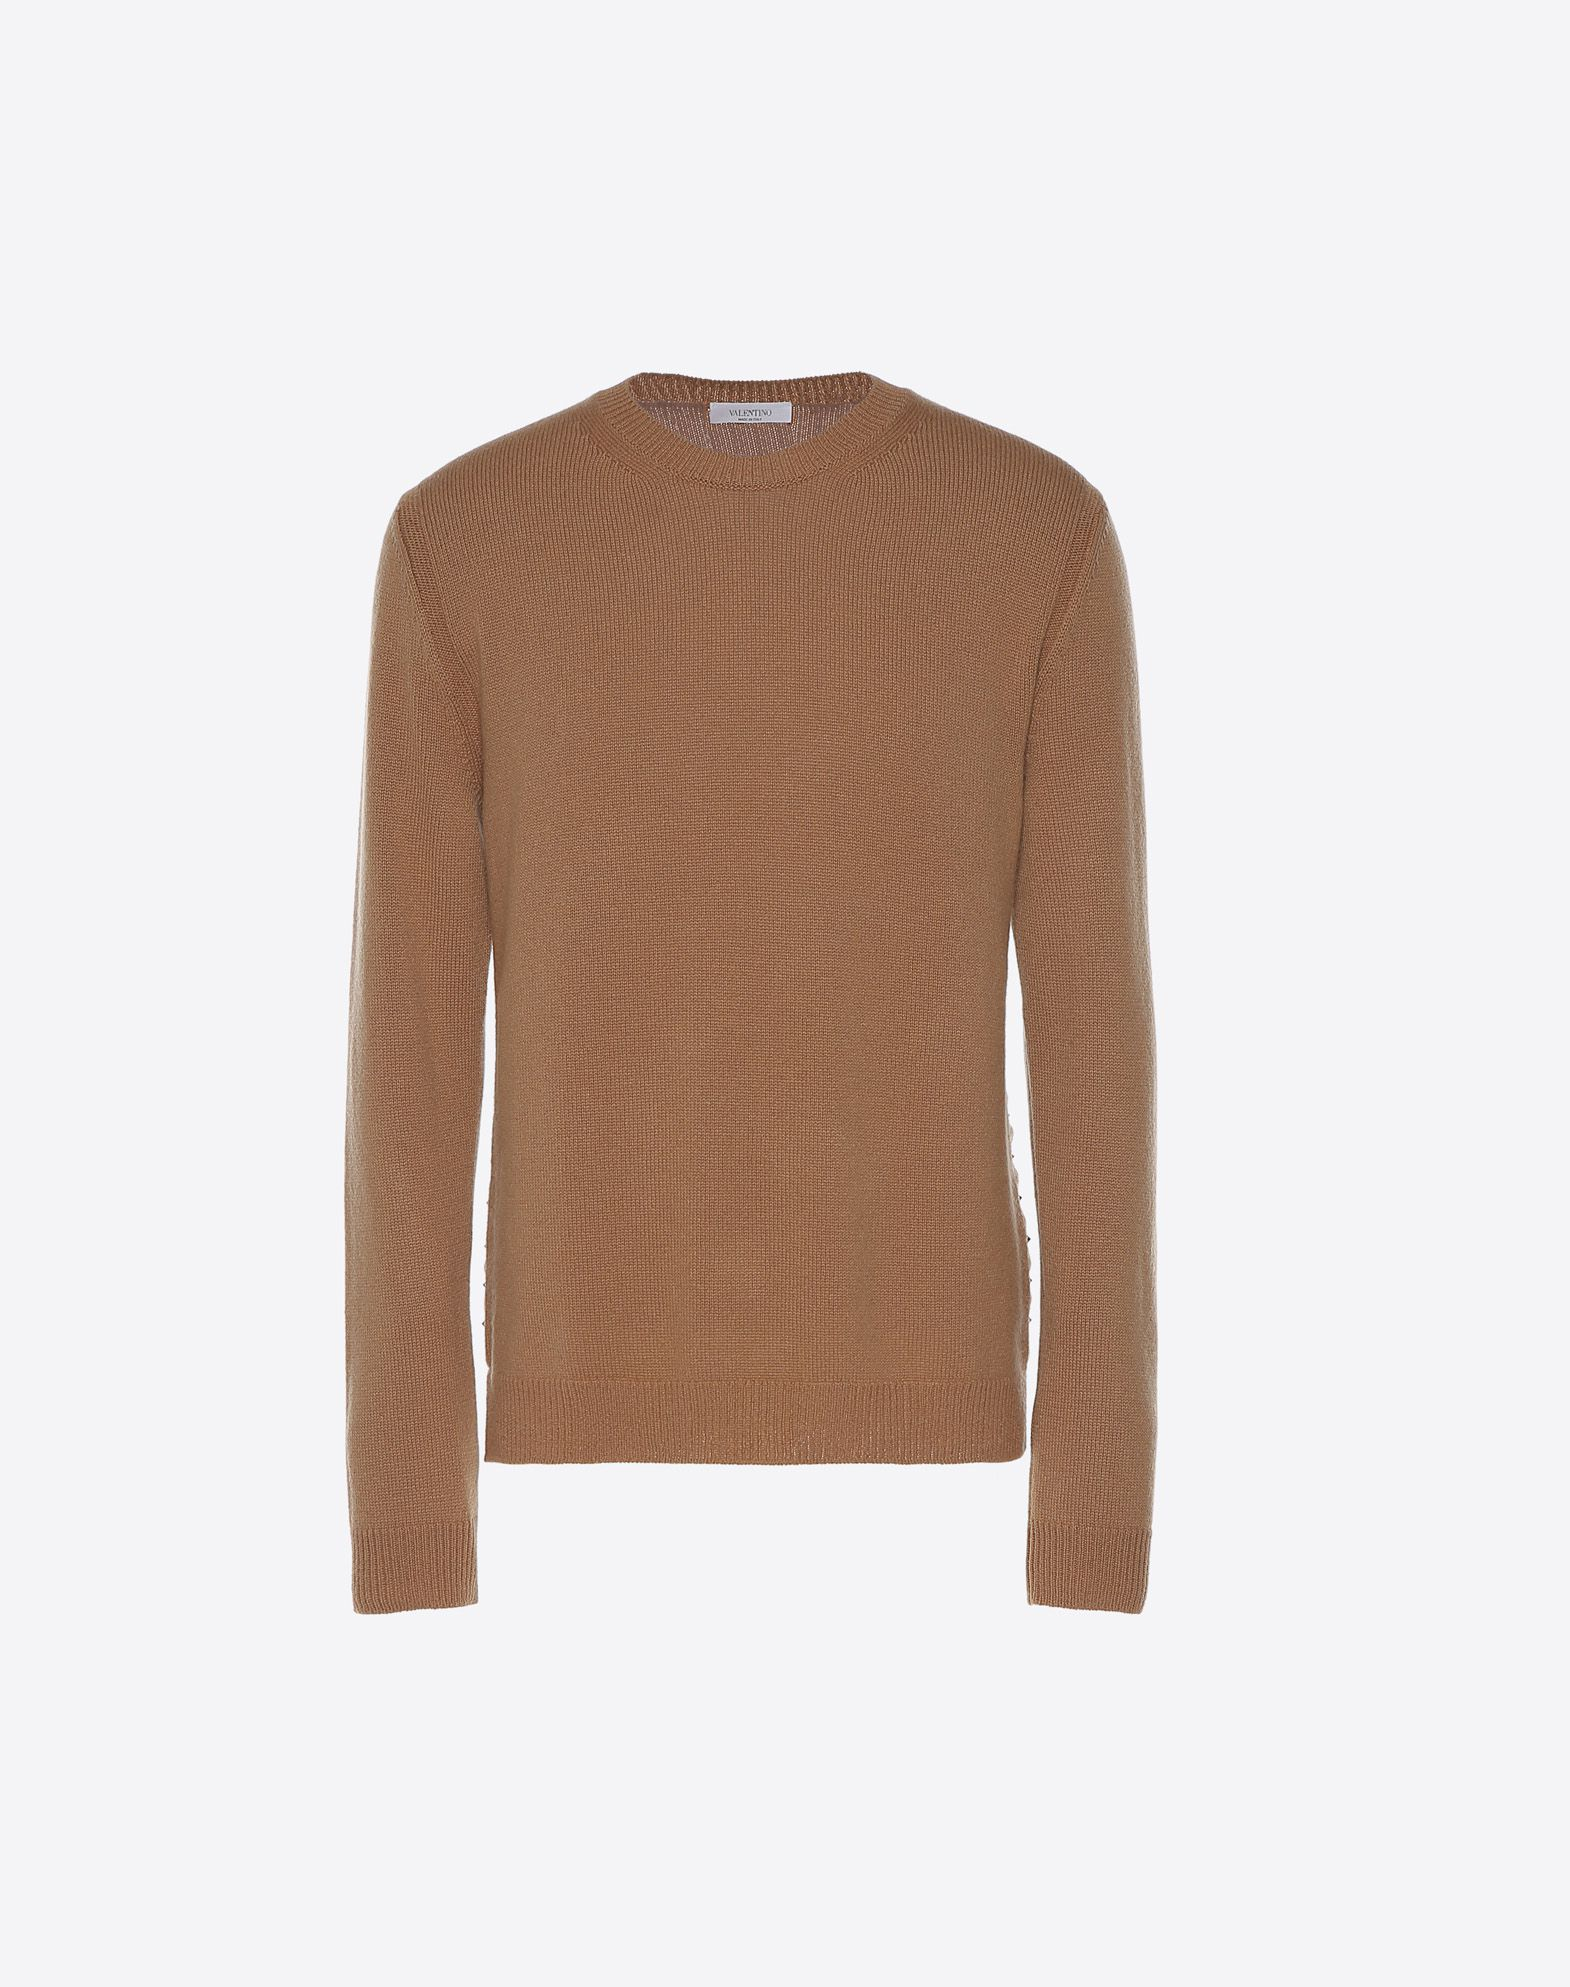 VALENTINO Studs Lightweight sweater Basic solid color Round collar Long sleeves  39713003wt